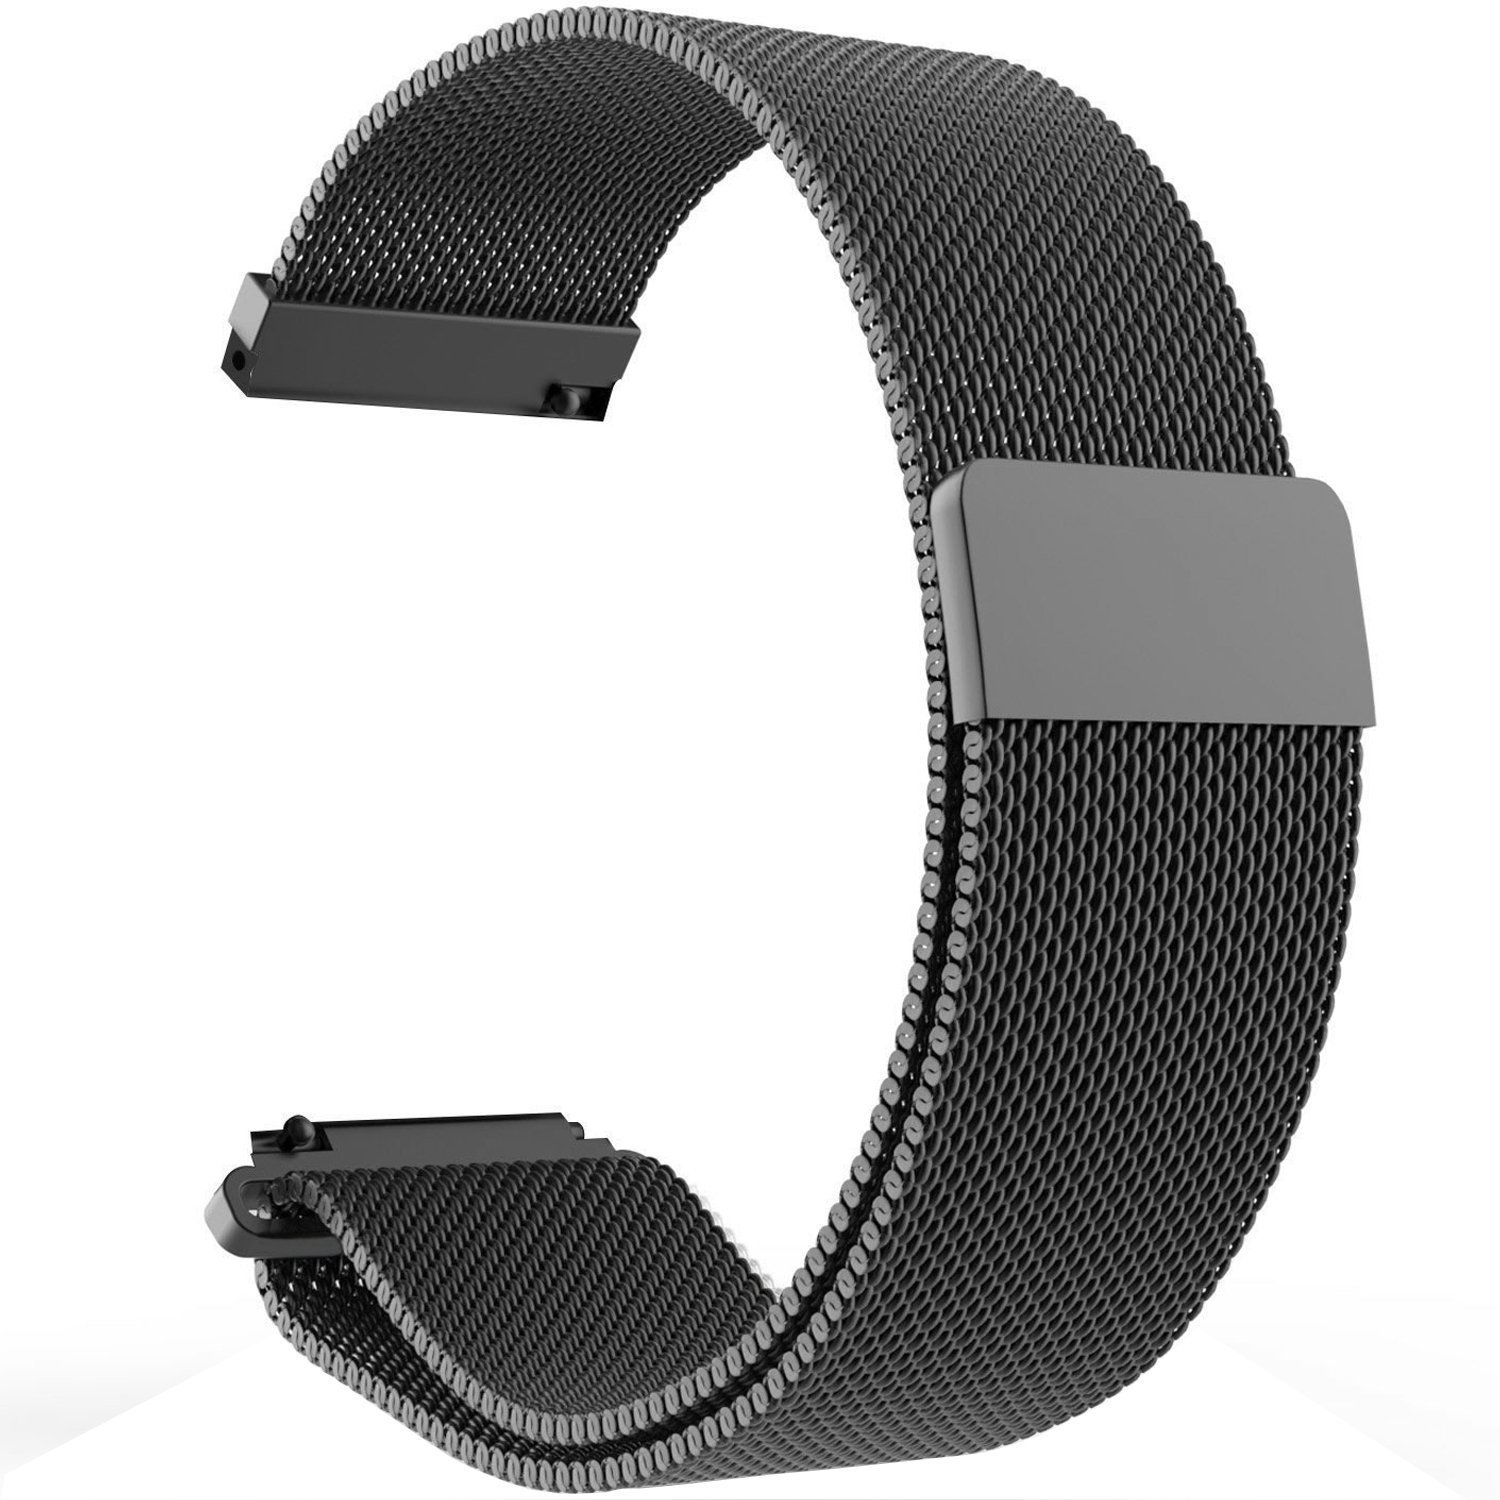 Turnwin Replacement Metal Milanese LOOP Bands for Amazfit PACE GPS Running Smartwatch (Black)